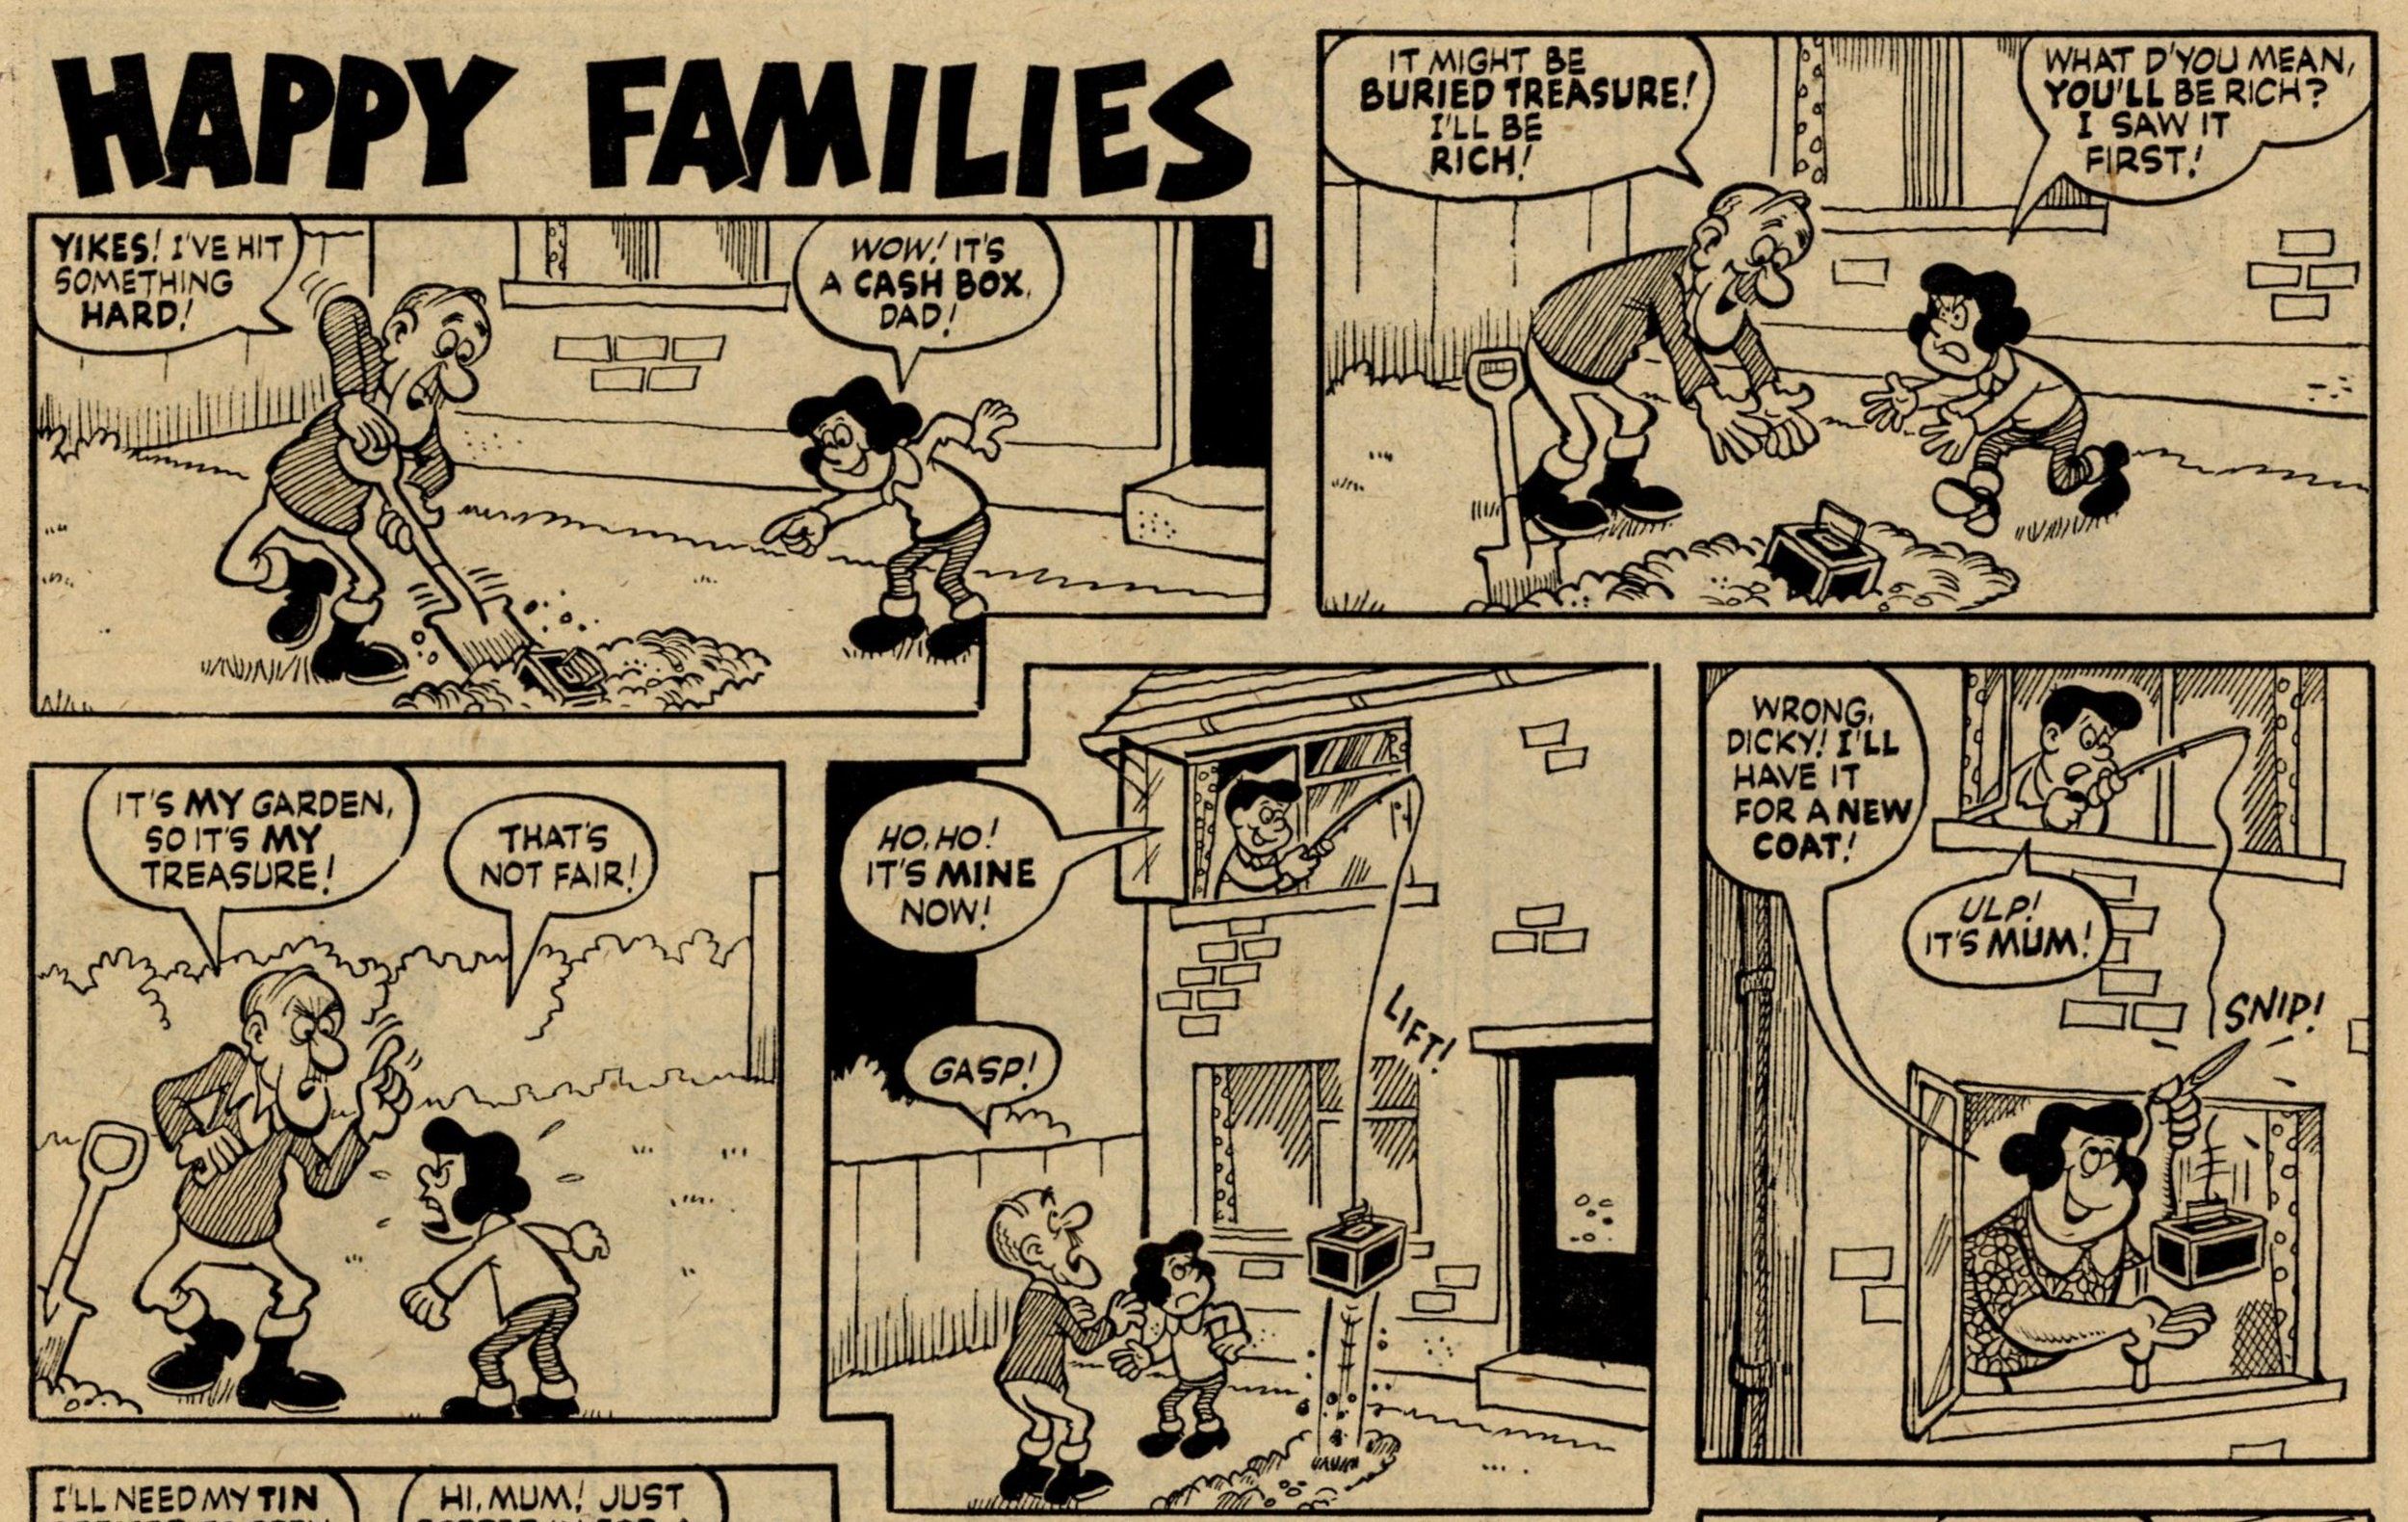 Happy Families: Dick Millington (artist)